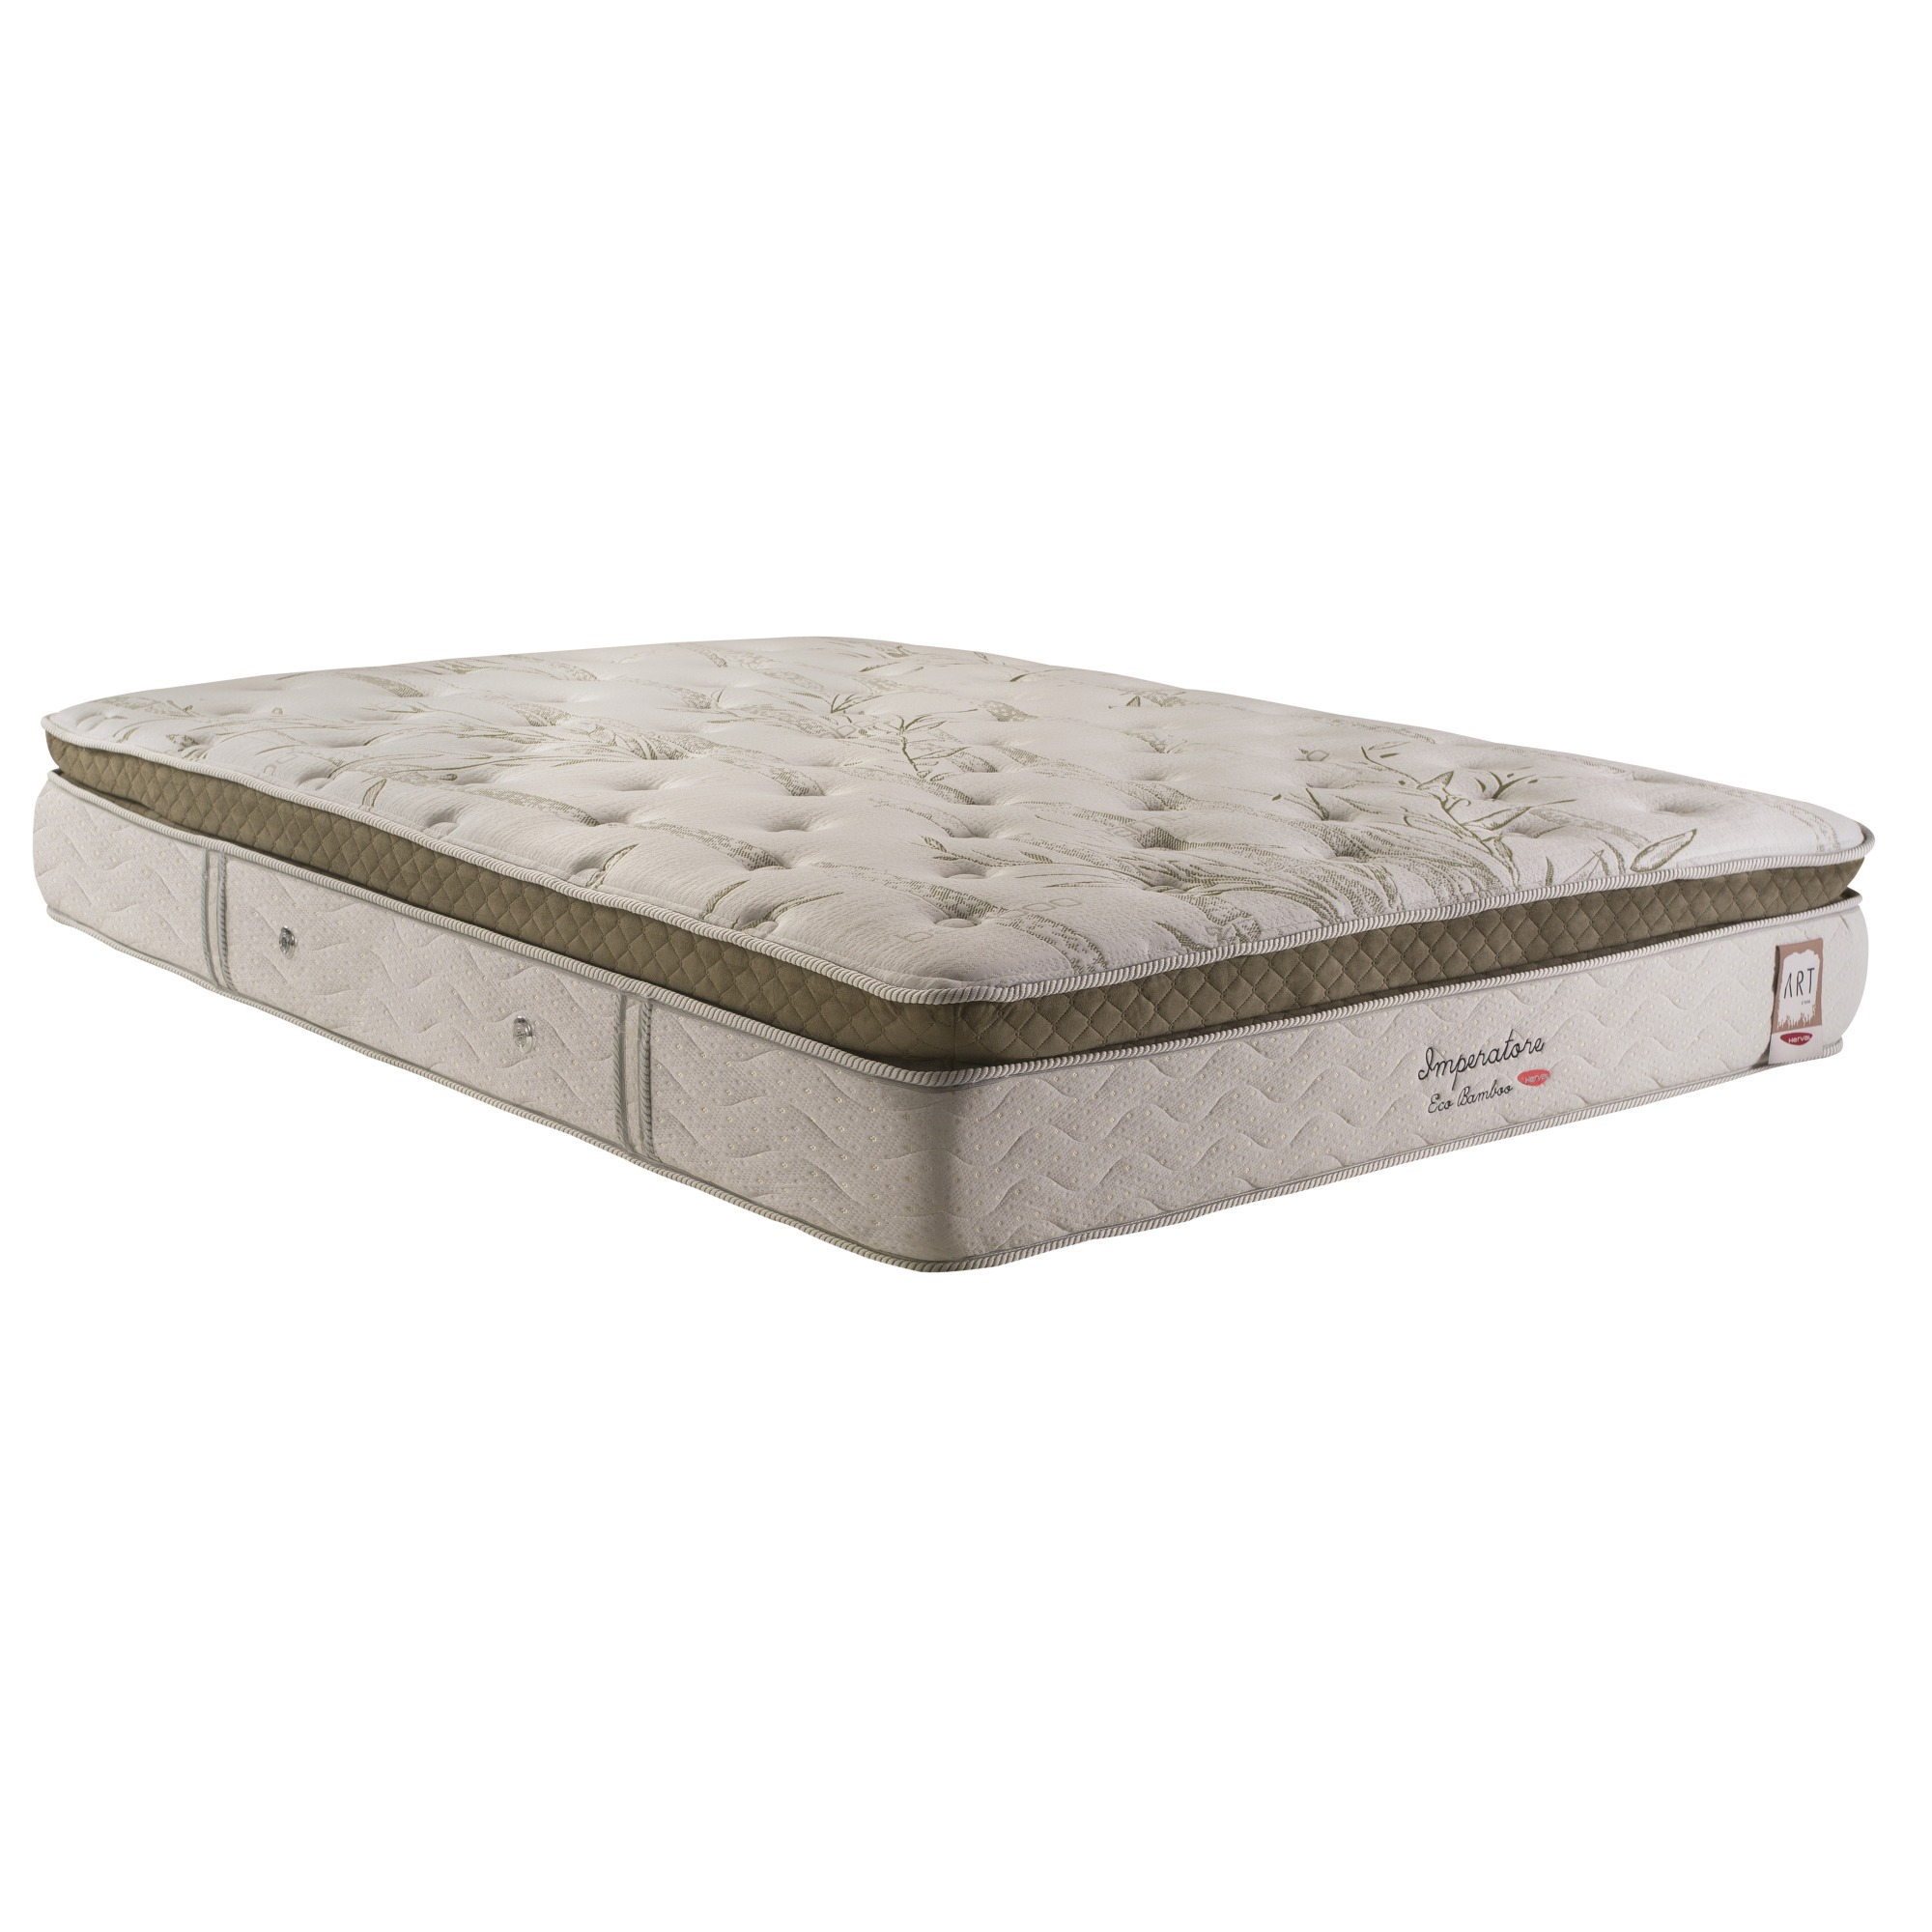 Colchao King Imperatore Mola com Pillow 193 x 203 cm - Herval